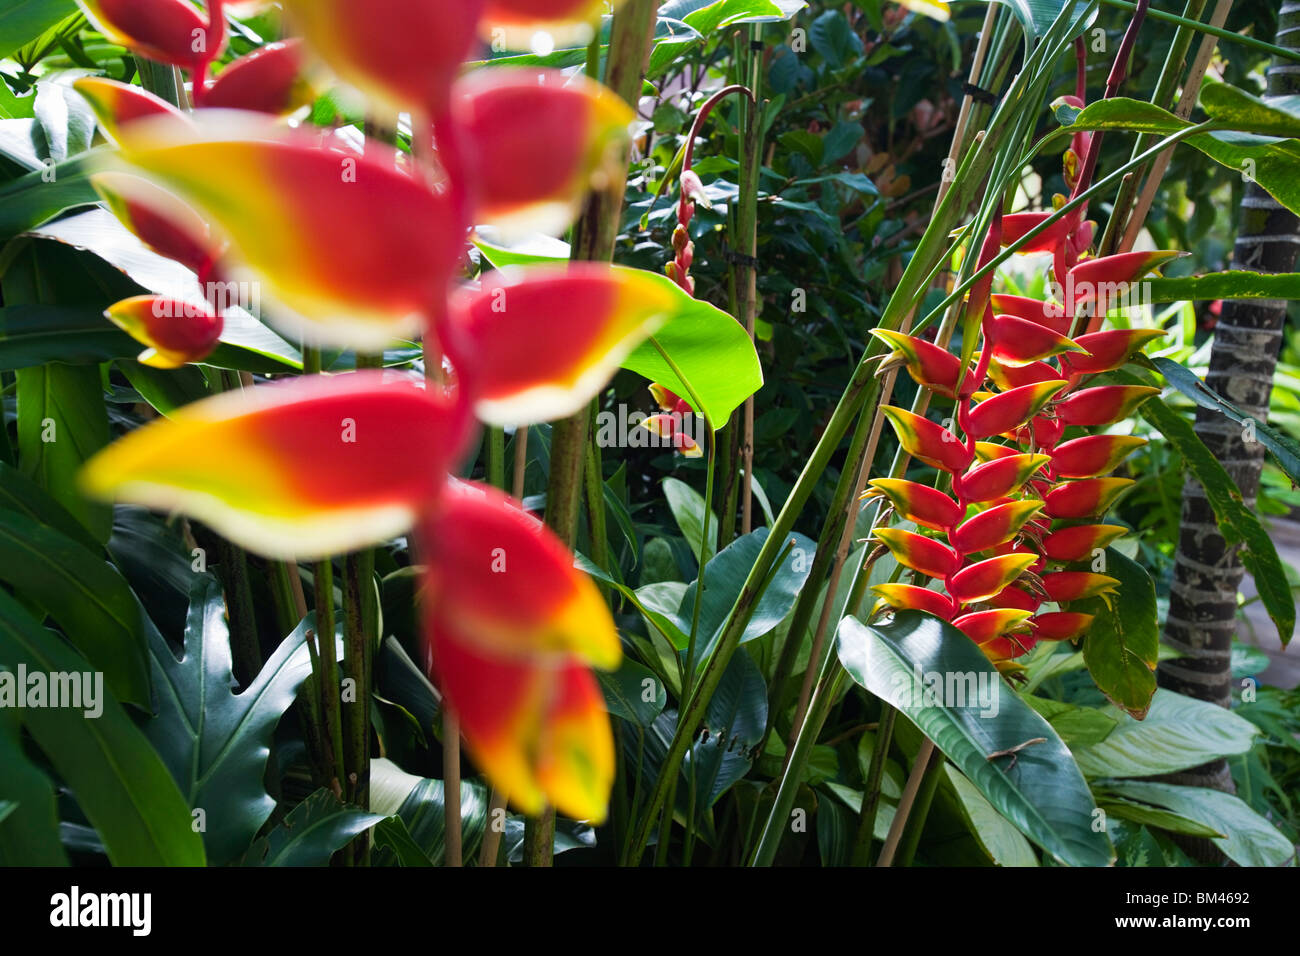 Heliconia flowers in the glasshouse at the Wintergarden, in the Auckland Domain. Auckland, North Island, New Zealand - Stock Image